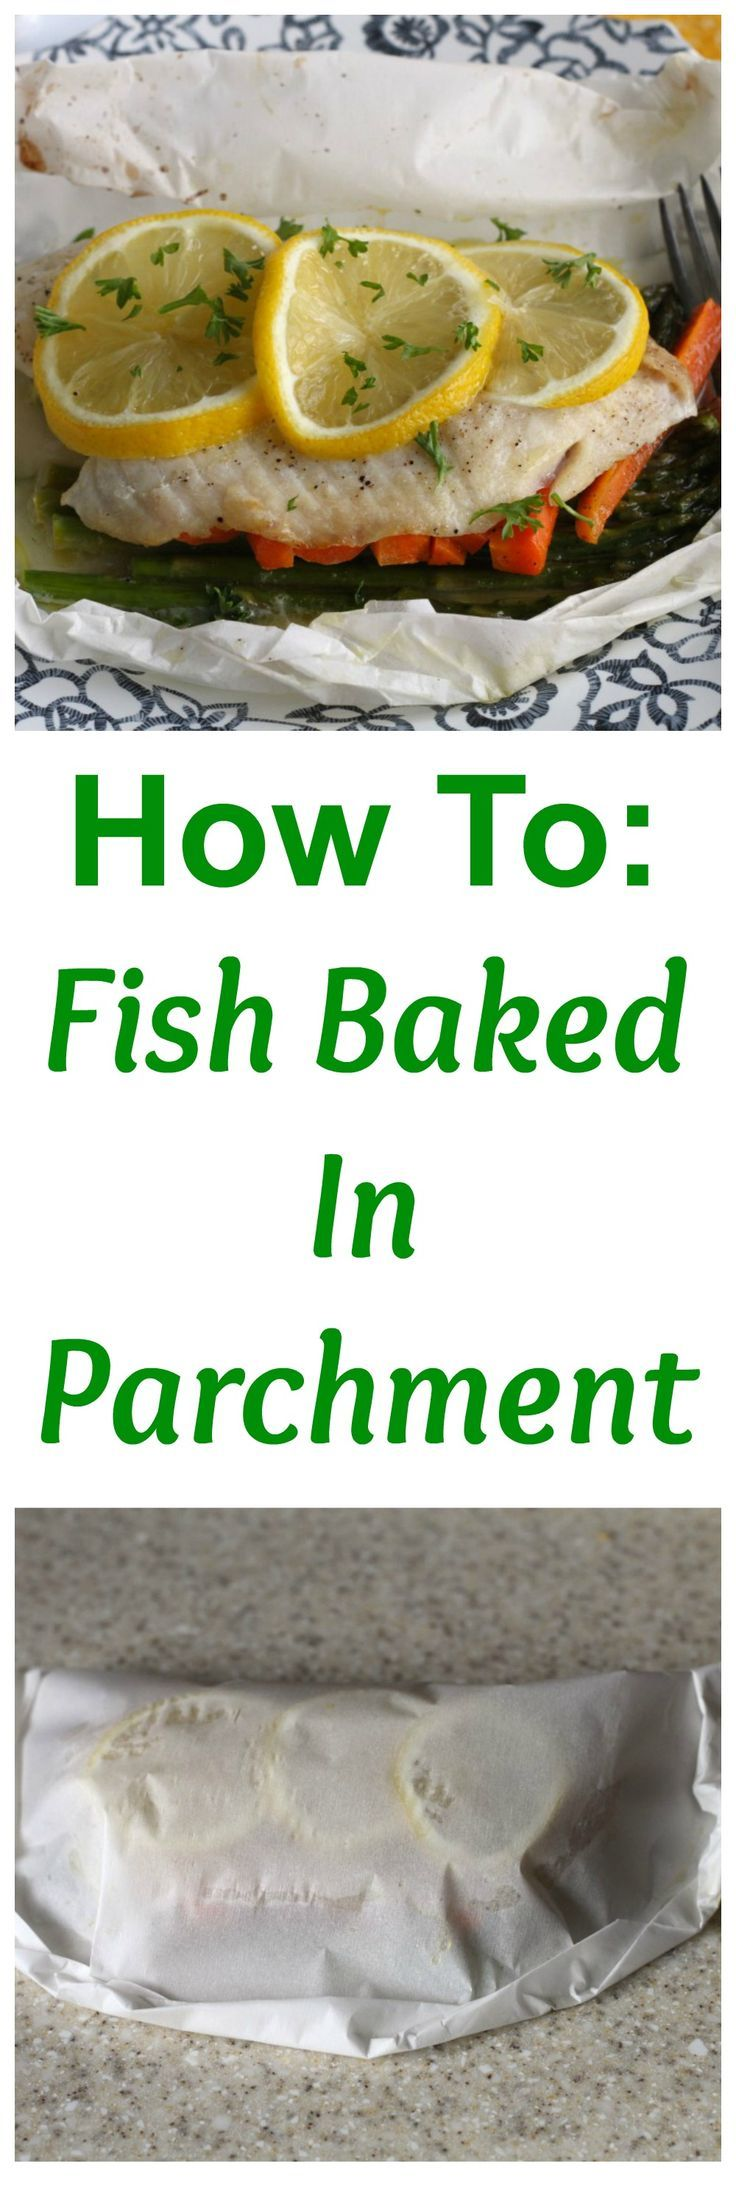 Ever baked fish in parchment paper? Its easy! Follow this step by step tutorial to take advantage of all the Spring ingredients in the market now!